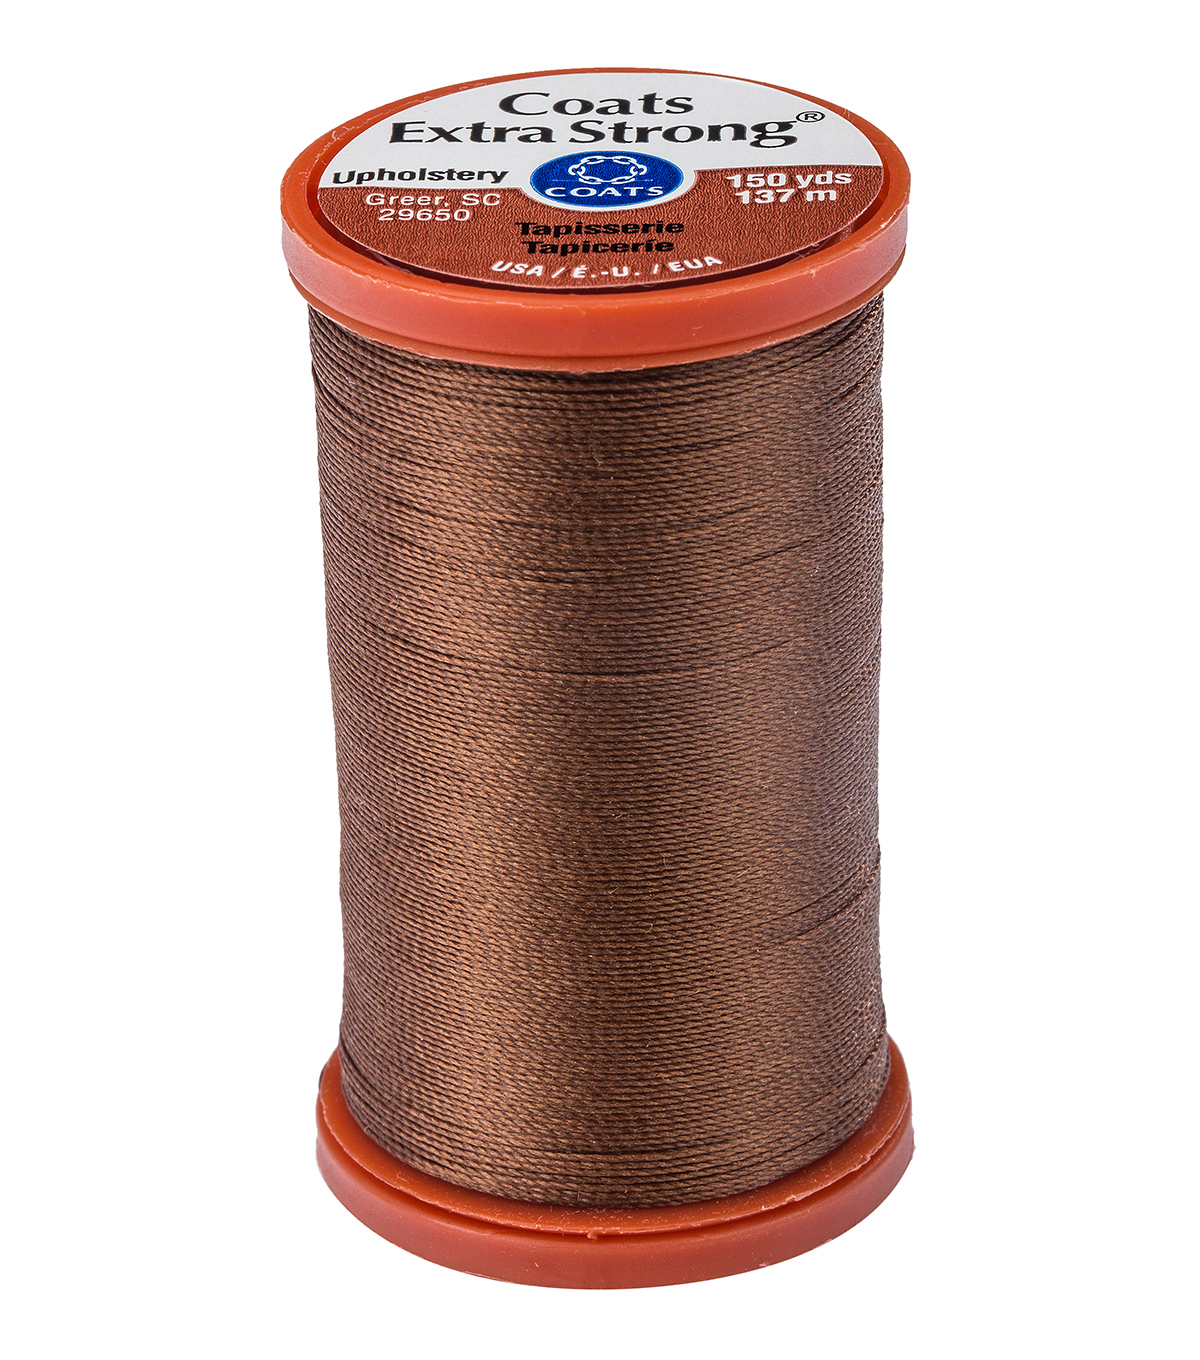 Coats & Clark Extra Strong & Upholstery Thread 150 yd , Tan